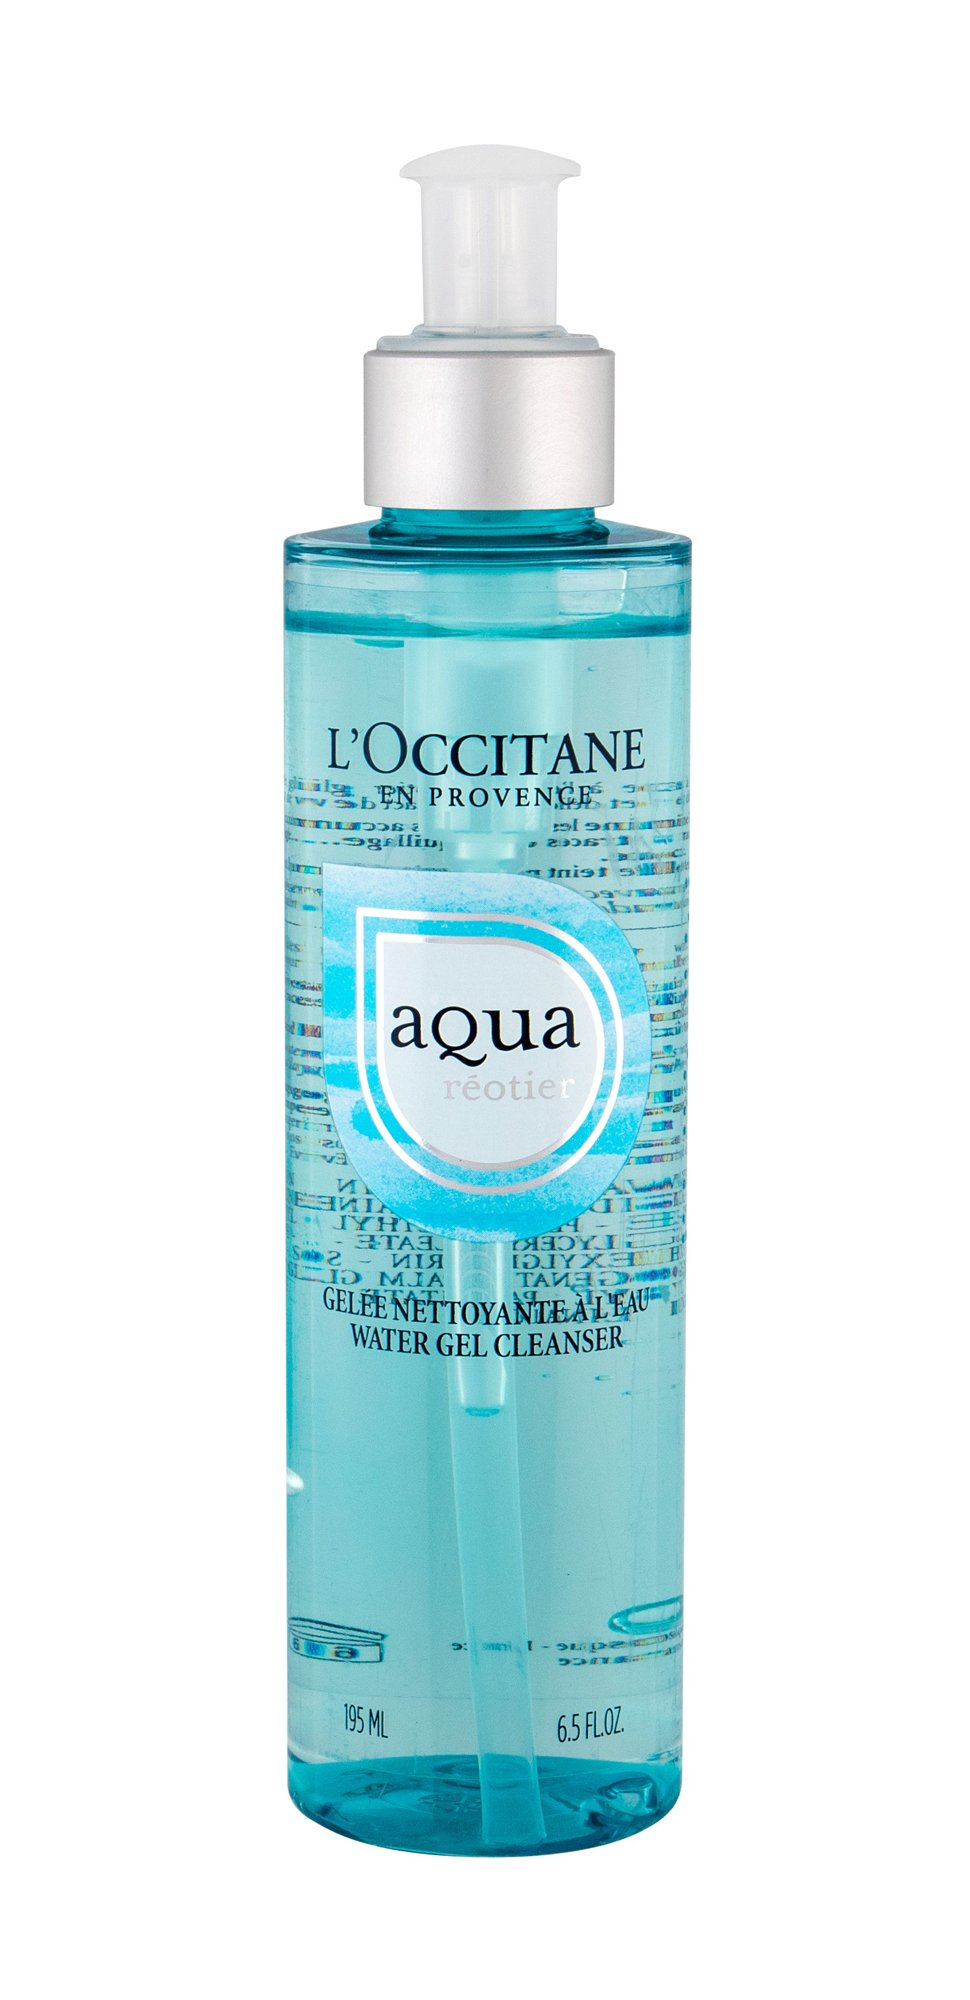 L´Occitane Aqua Réotier Cleansing Gel 195ml